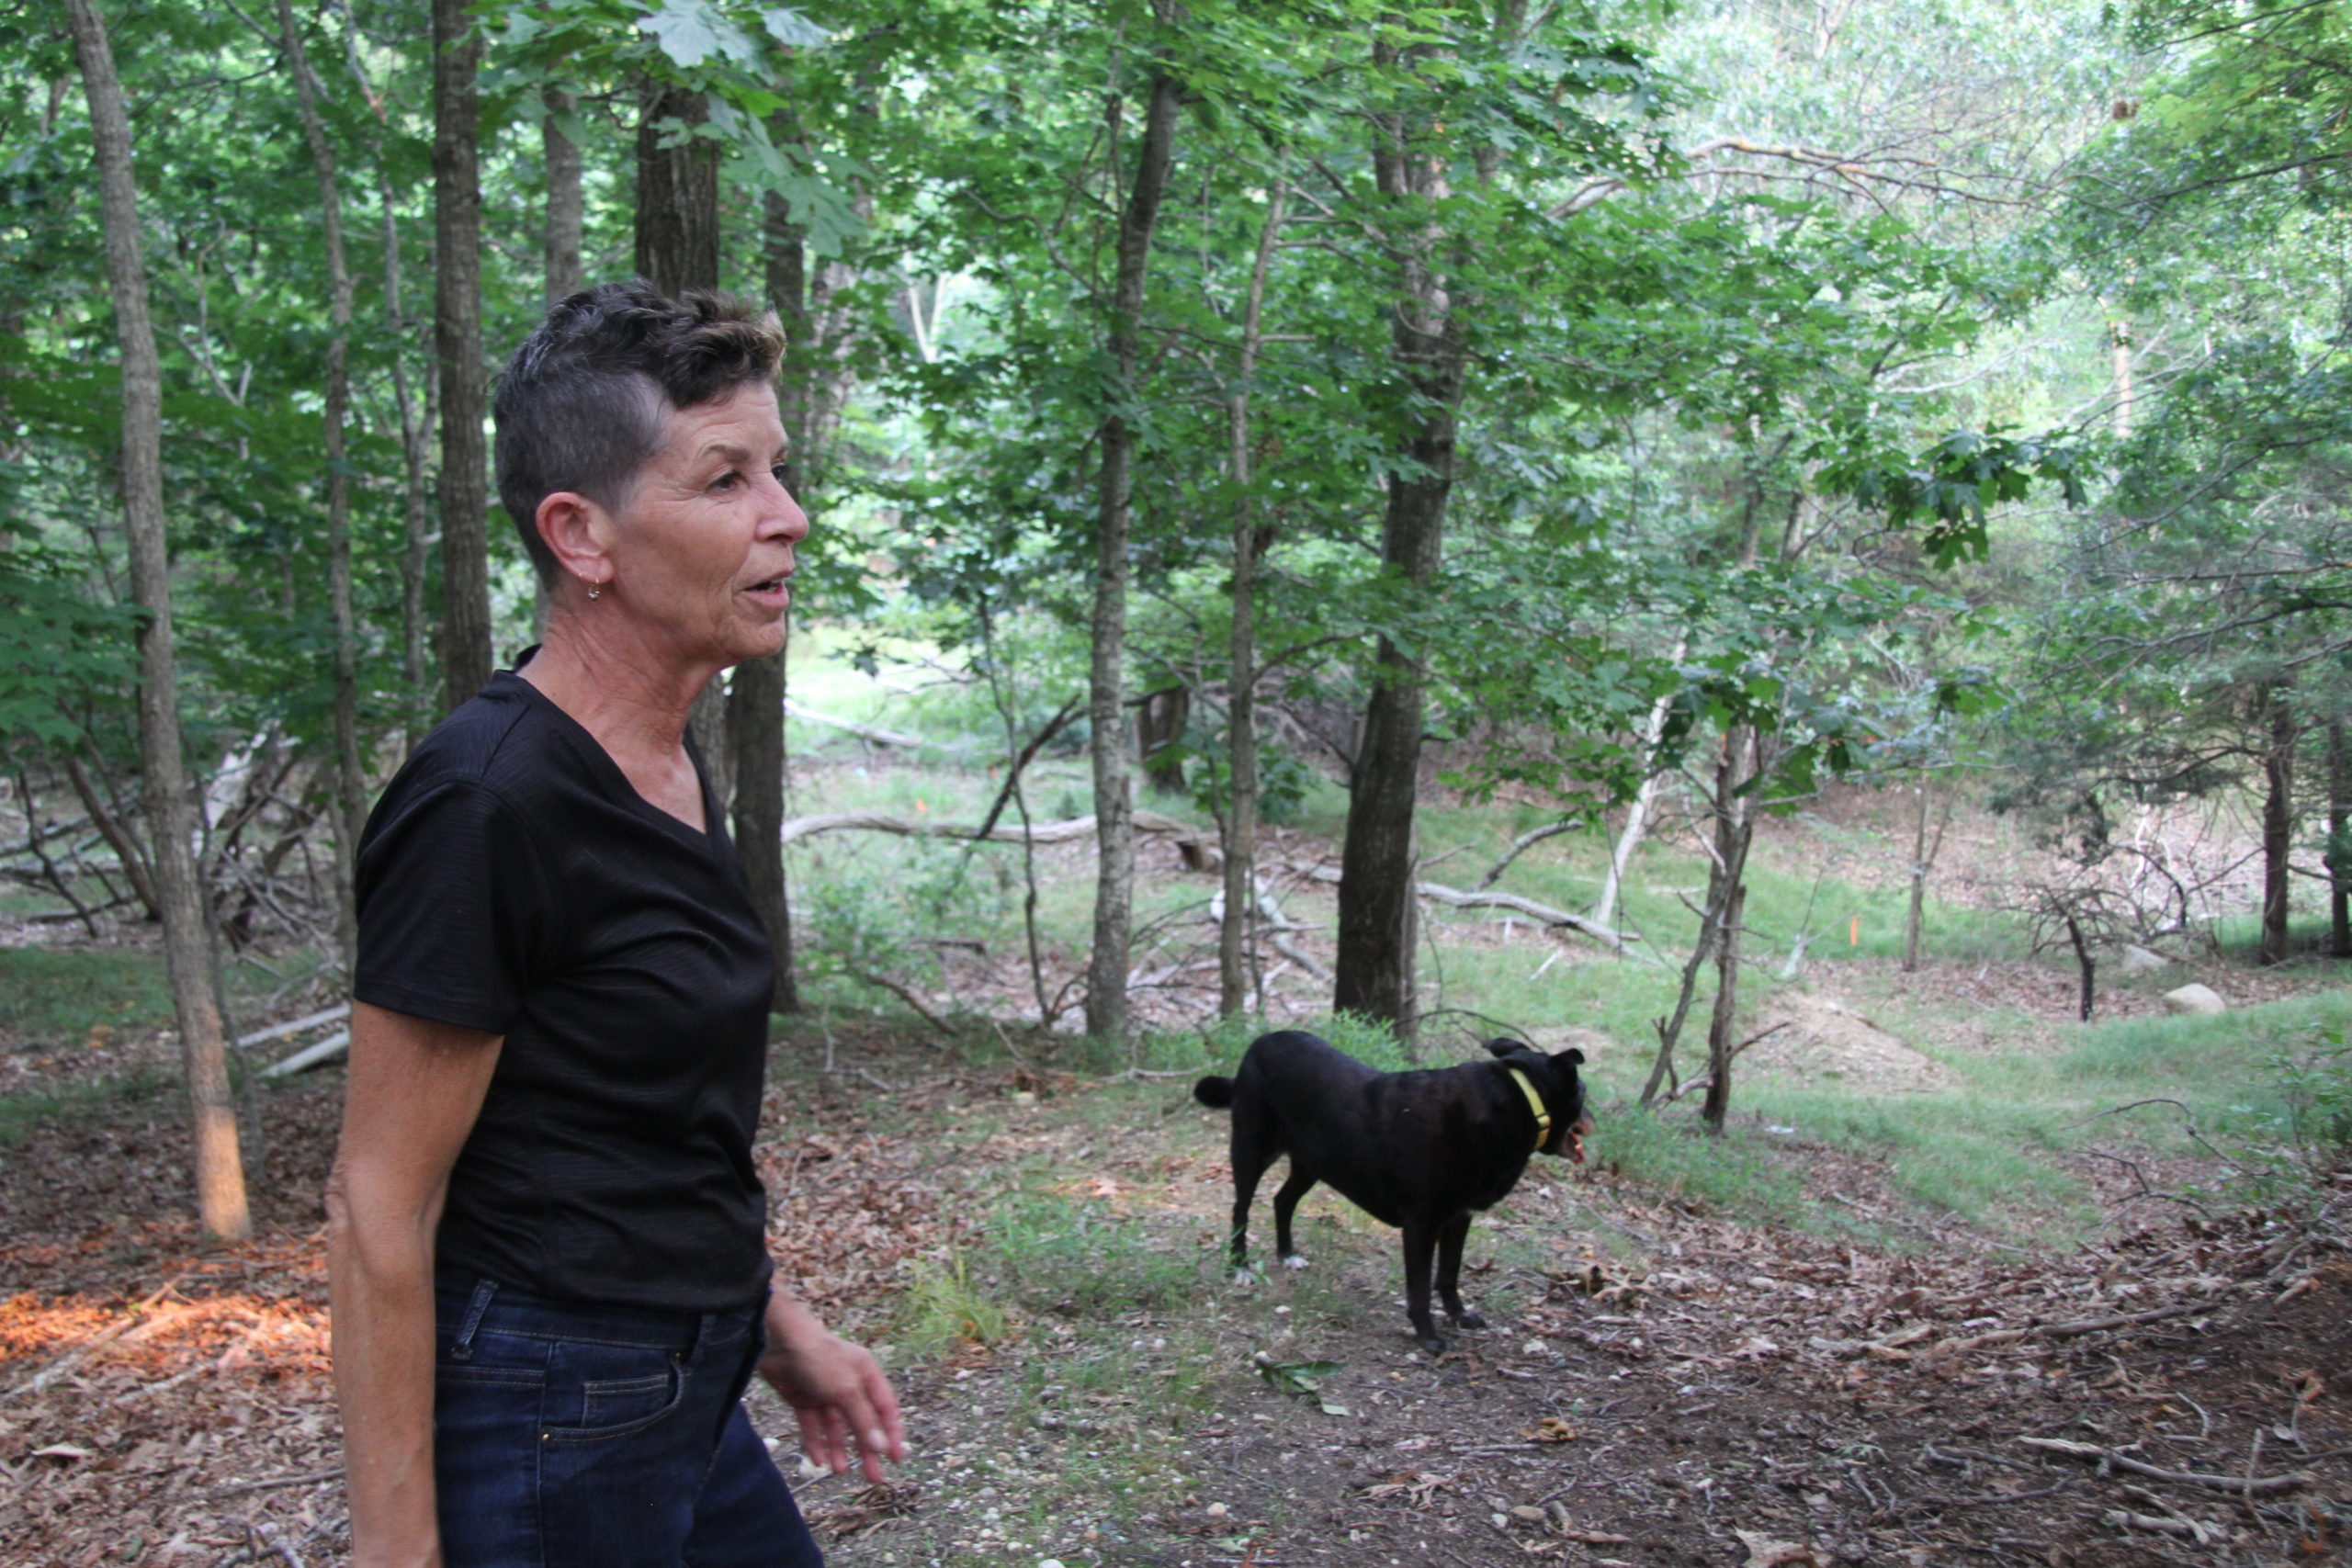 Aleaze Schaap-Hodgens, who lives on the edge of the wooded lot, said it's